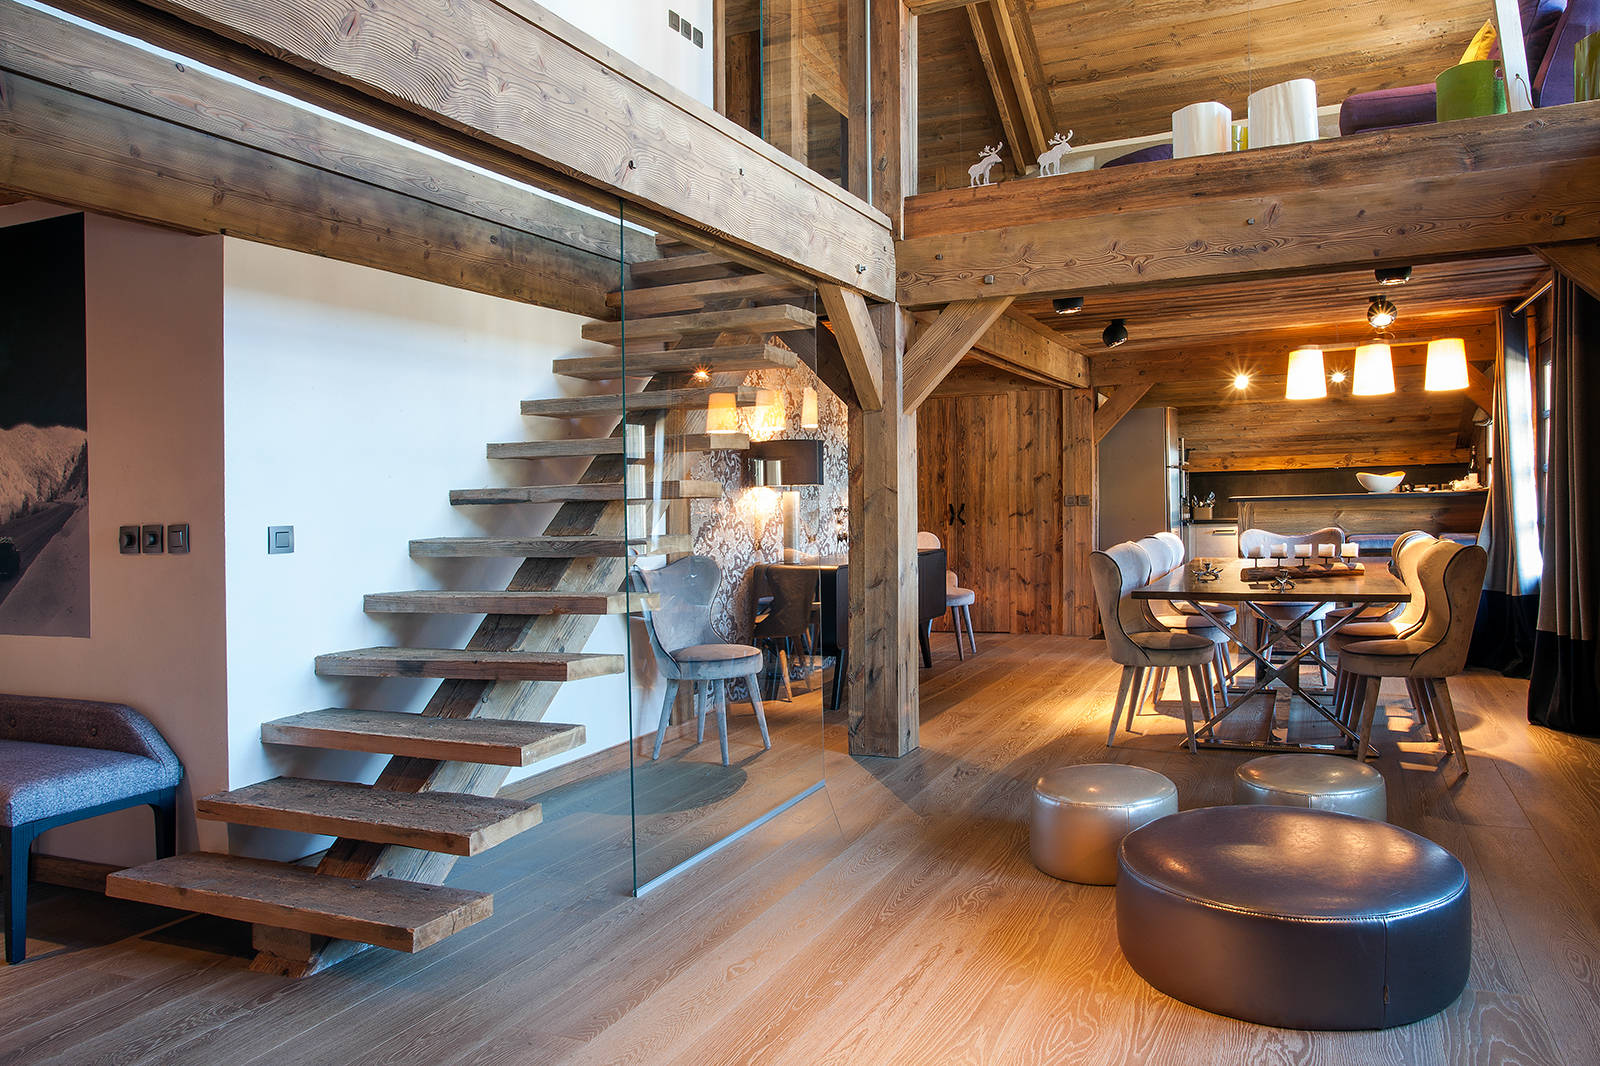 15 enchanting rustic staircase designs that you 39 re going to fall in love with for Open plan house interior design